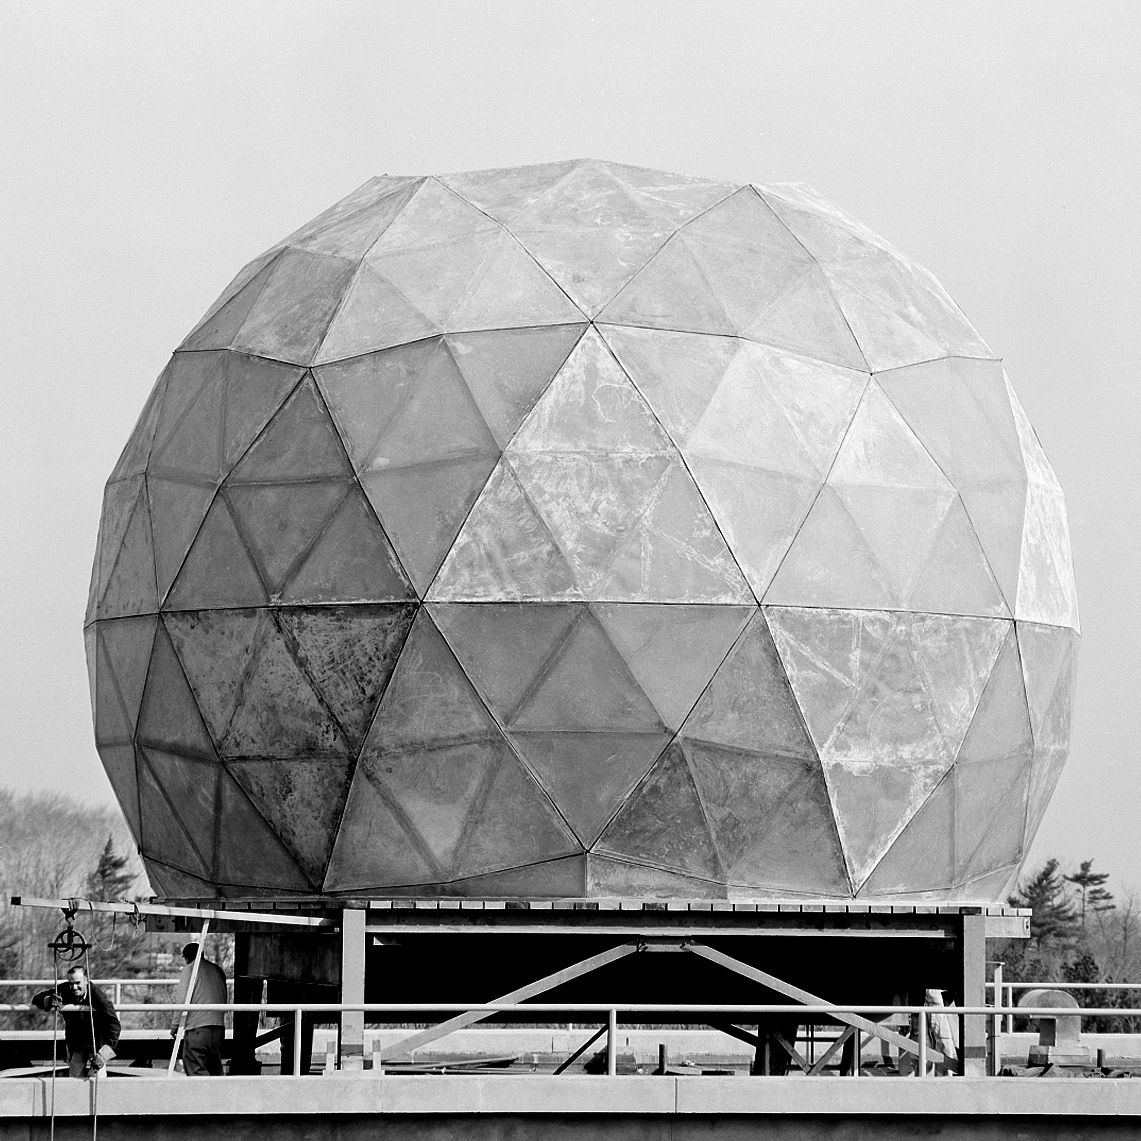 Geodesic radome, first developed at Lincoln Laboratory for DEW Line radars.